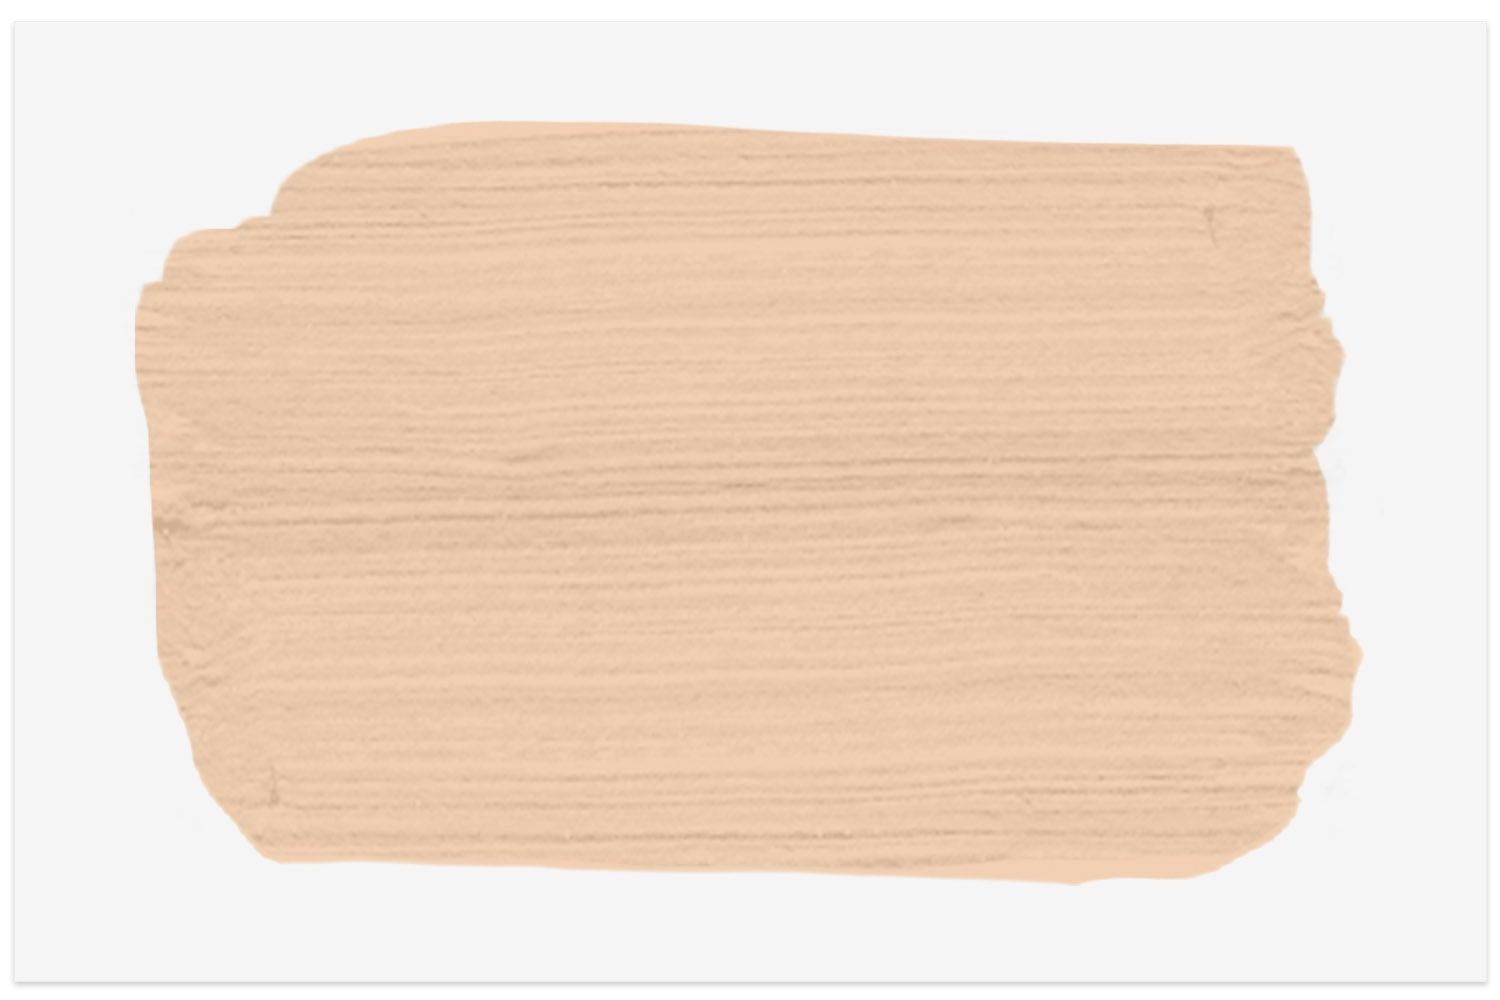 Pale Coral paint swatch from Behr